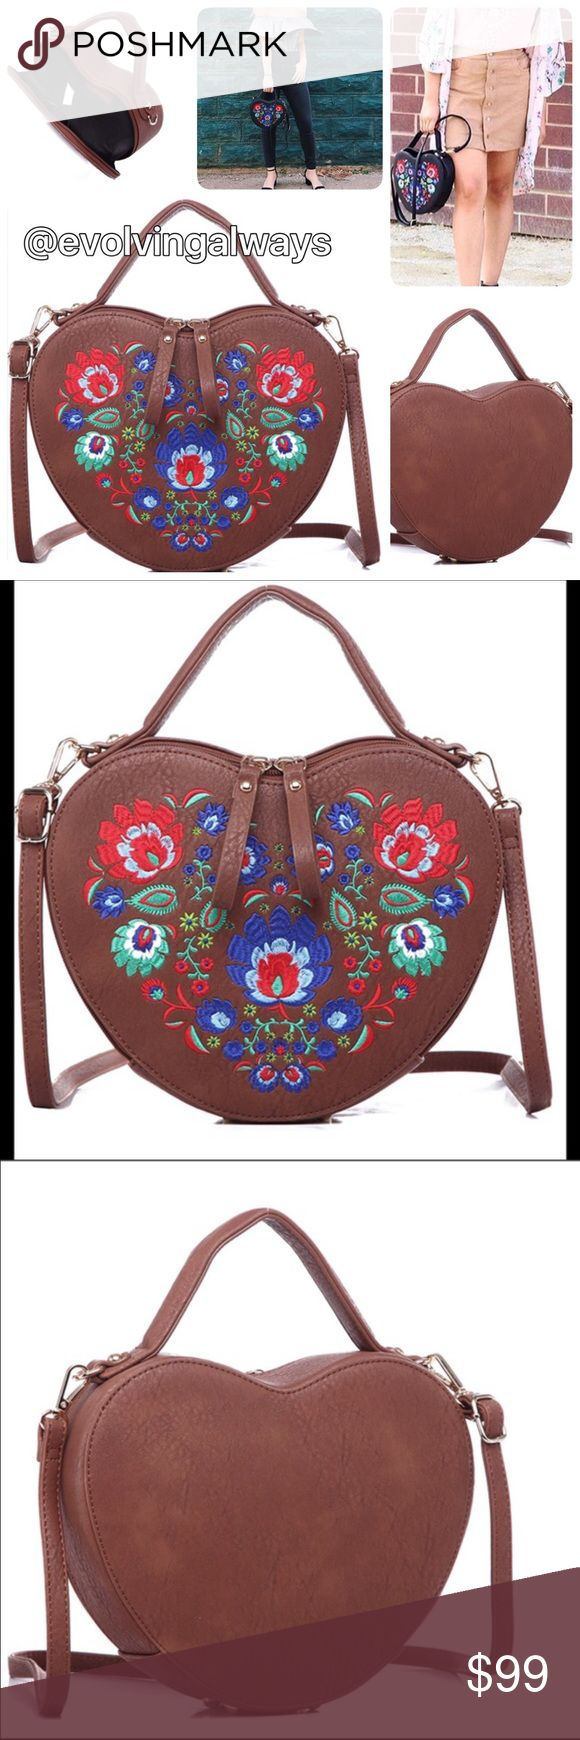 🆕Heart Shaped Embroidered Bag Vegan Leather See last pictures for full details of the bag. Materials PU and cloth interior. This listing is for the brown bag only. Reasonable offers will be accepted. Pink Haley Bags